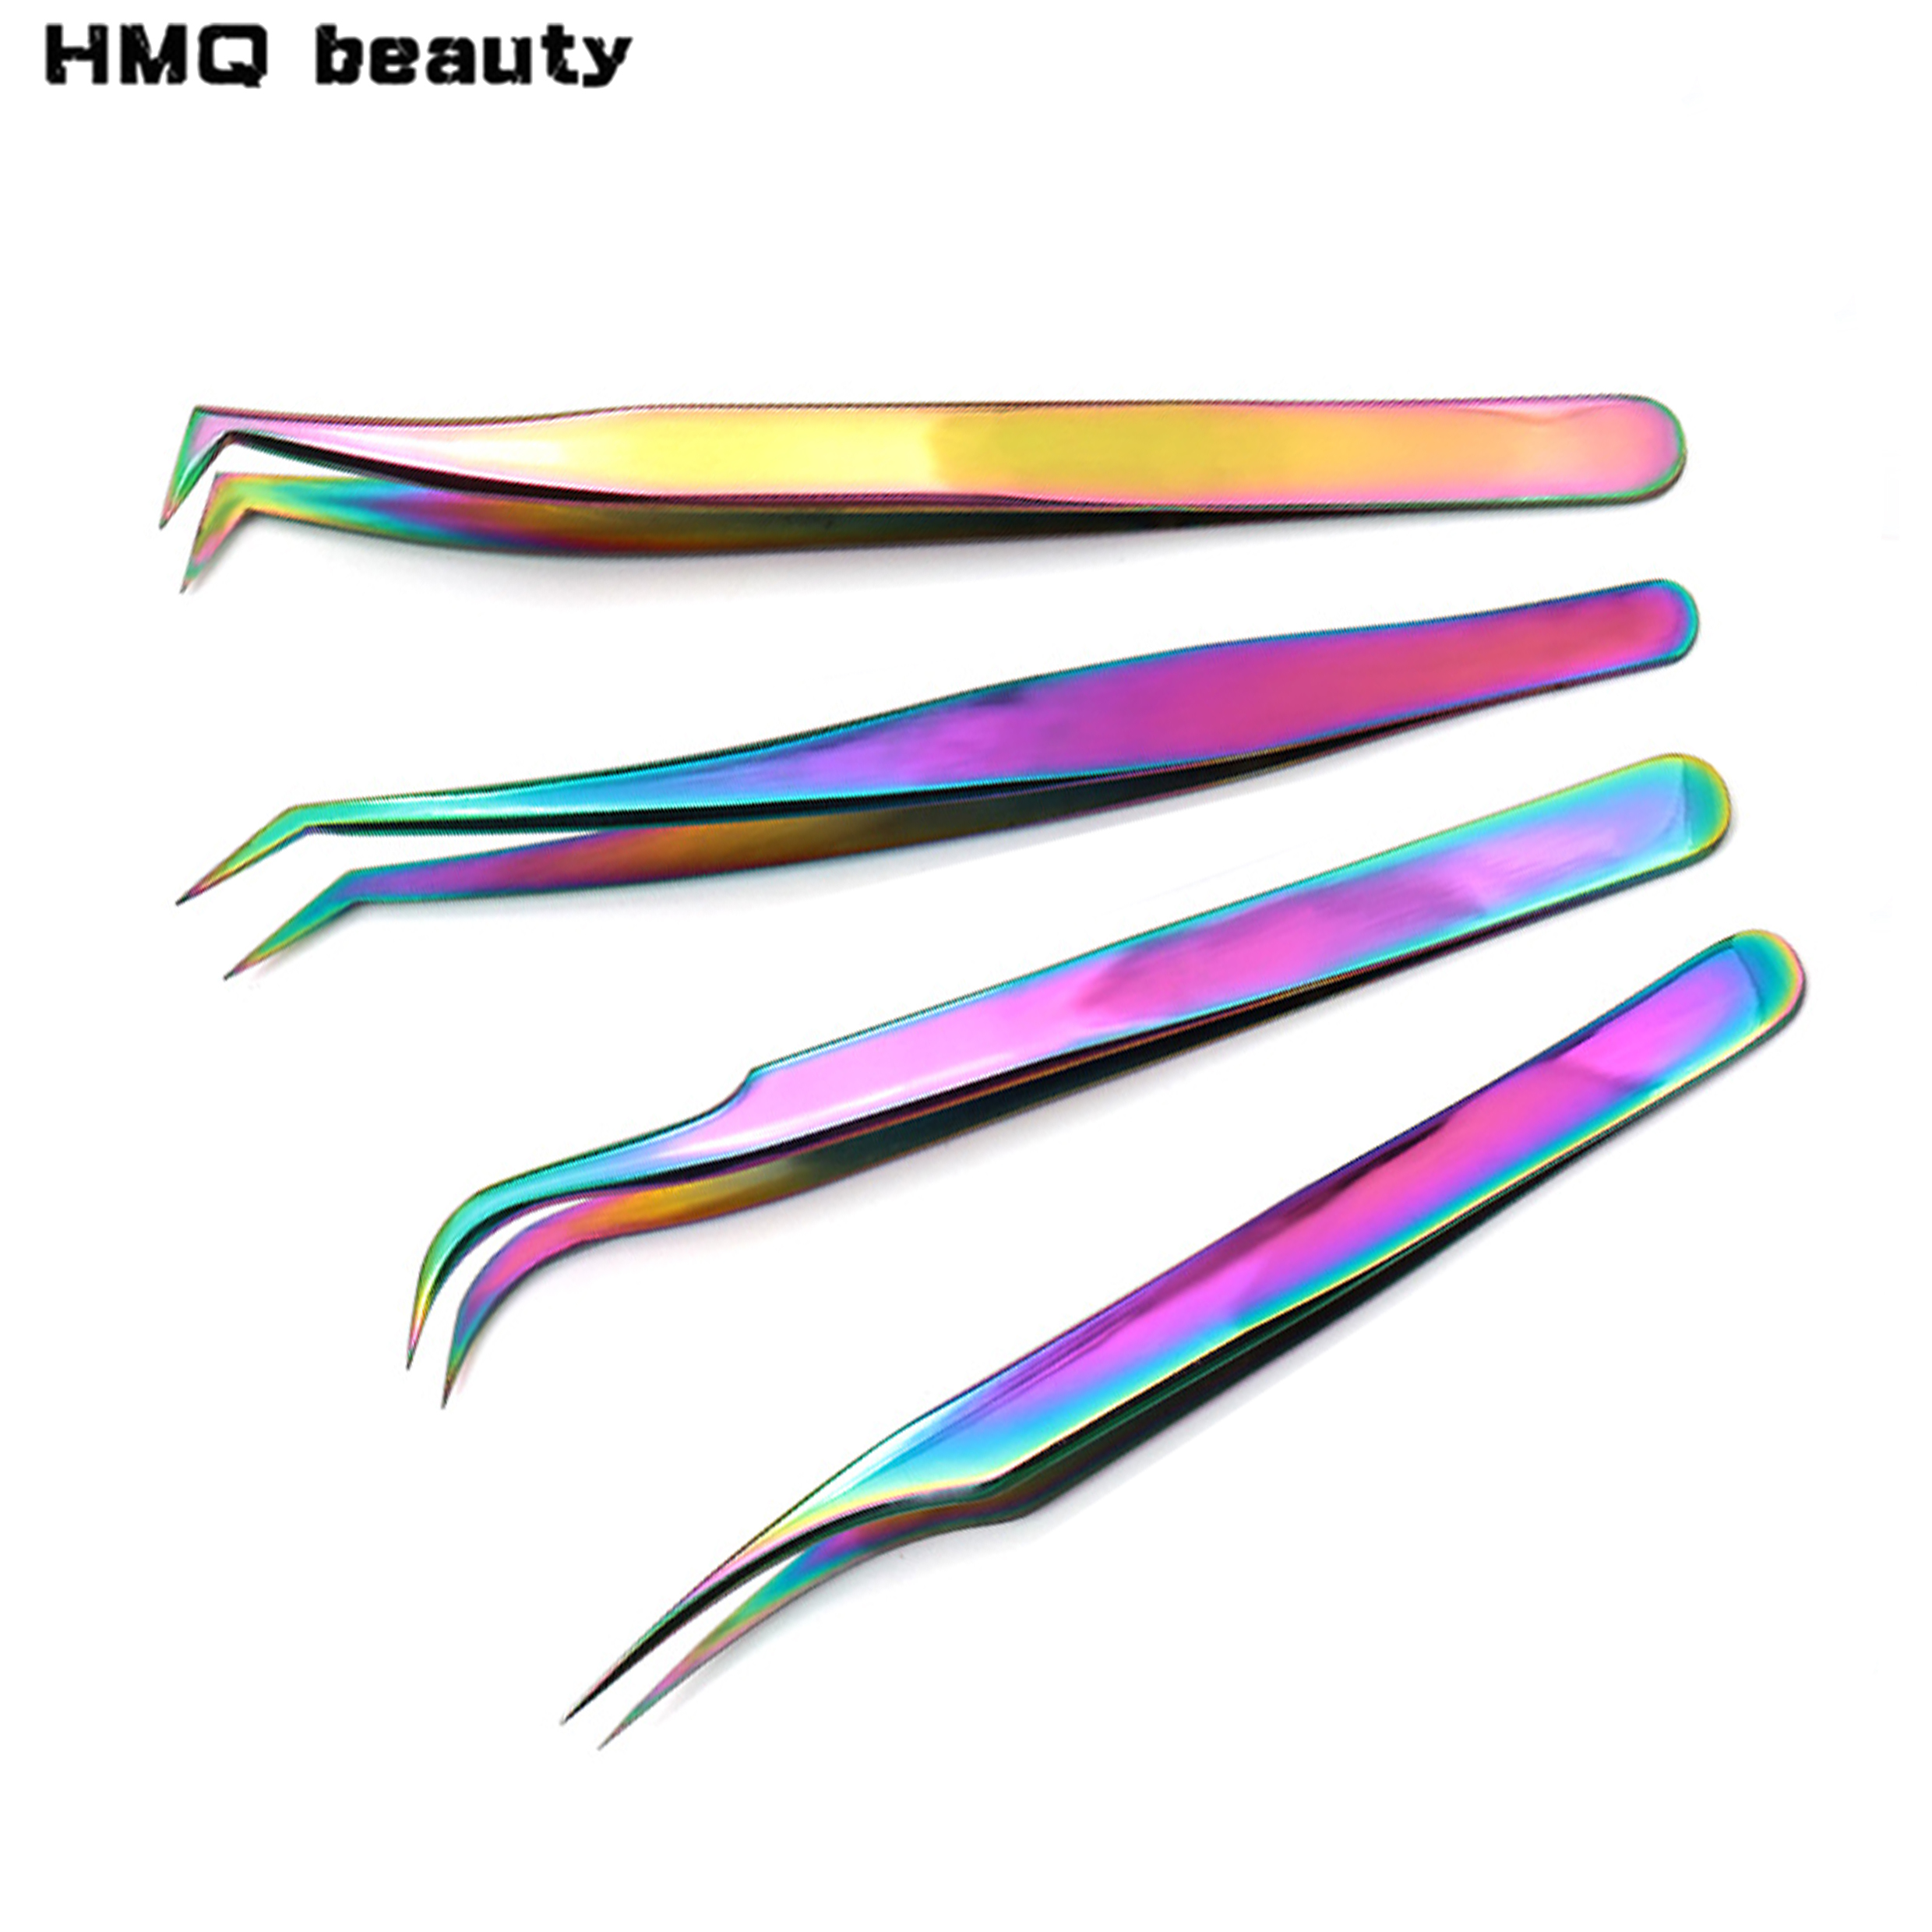 1pcs Professional Eyelashes Tweezers Stainless Steel Rainbow Decor Picker Anti-static Tweezer For Eyelash Extension Makeup Tools